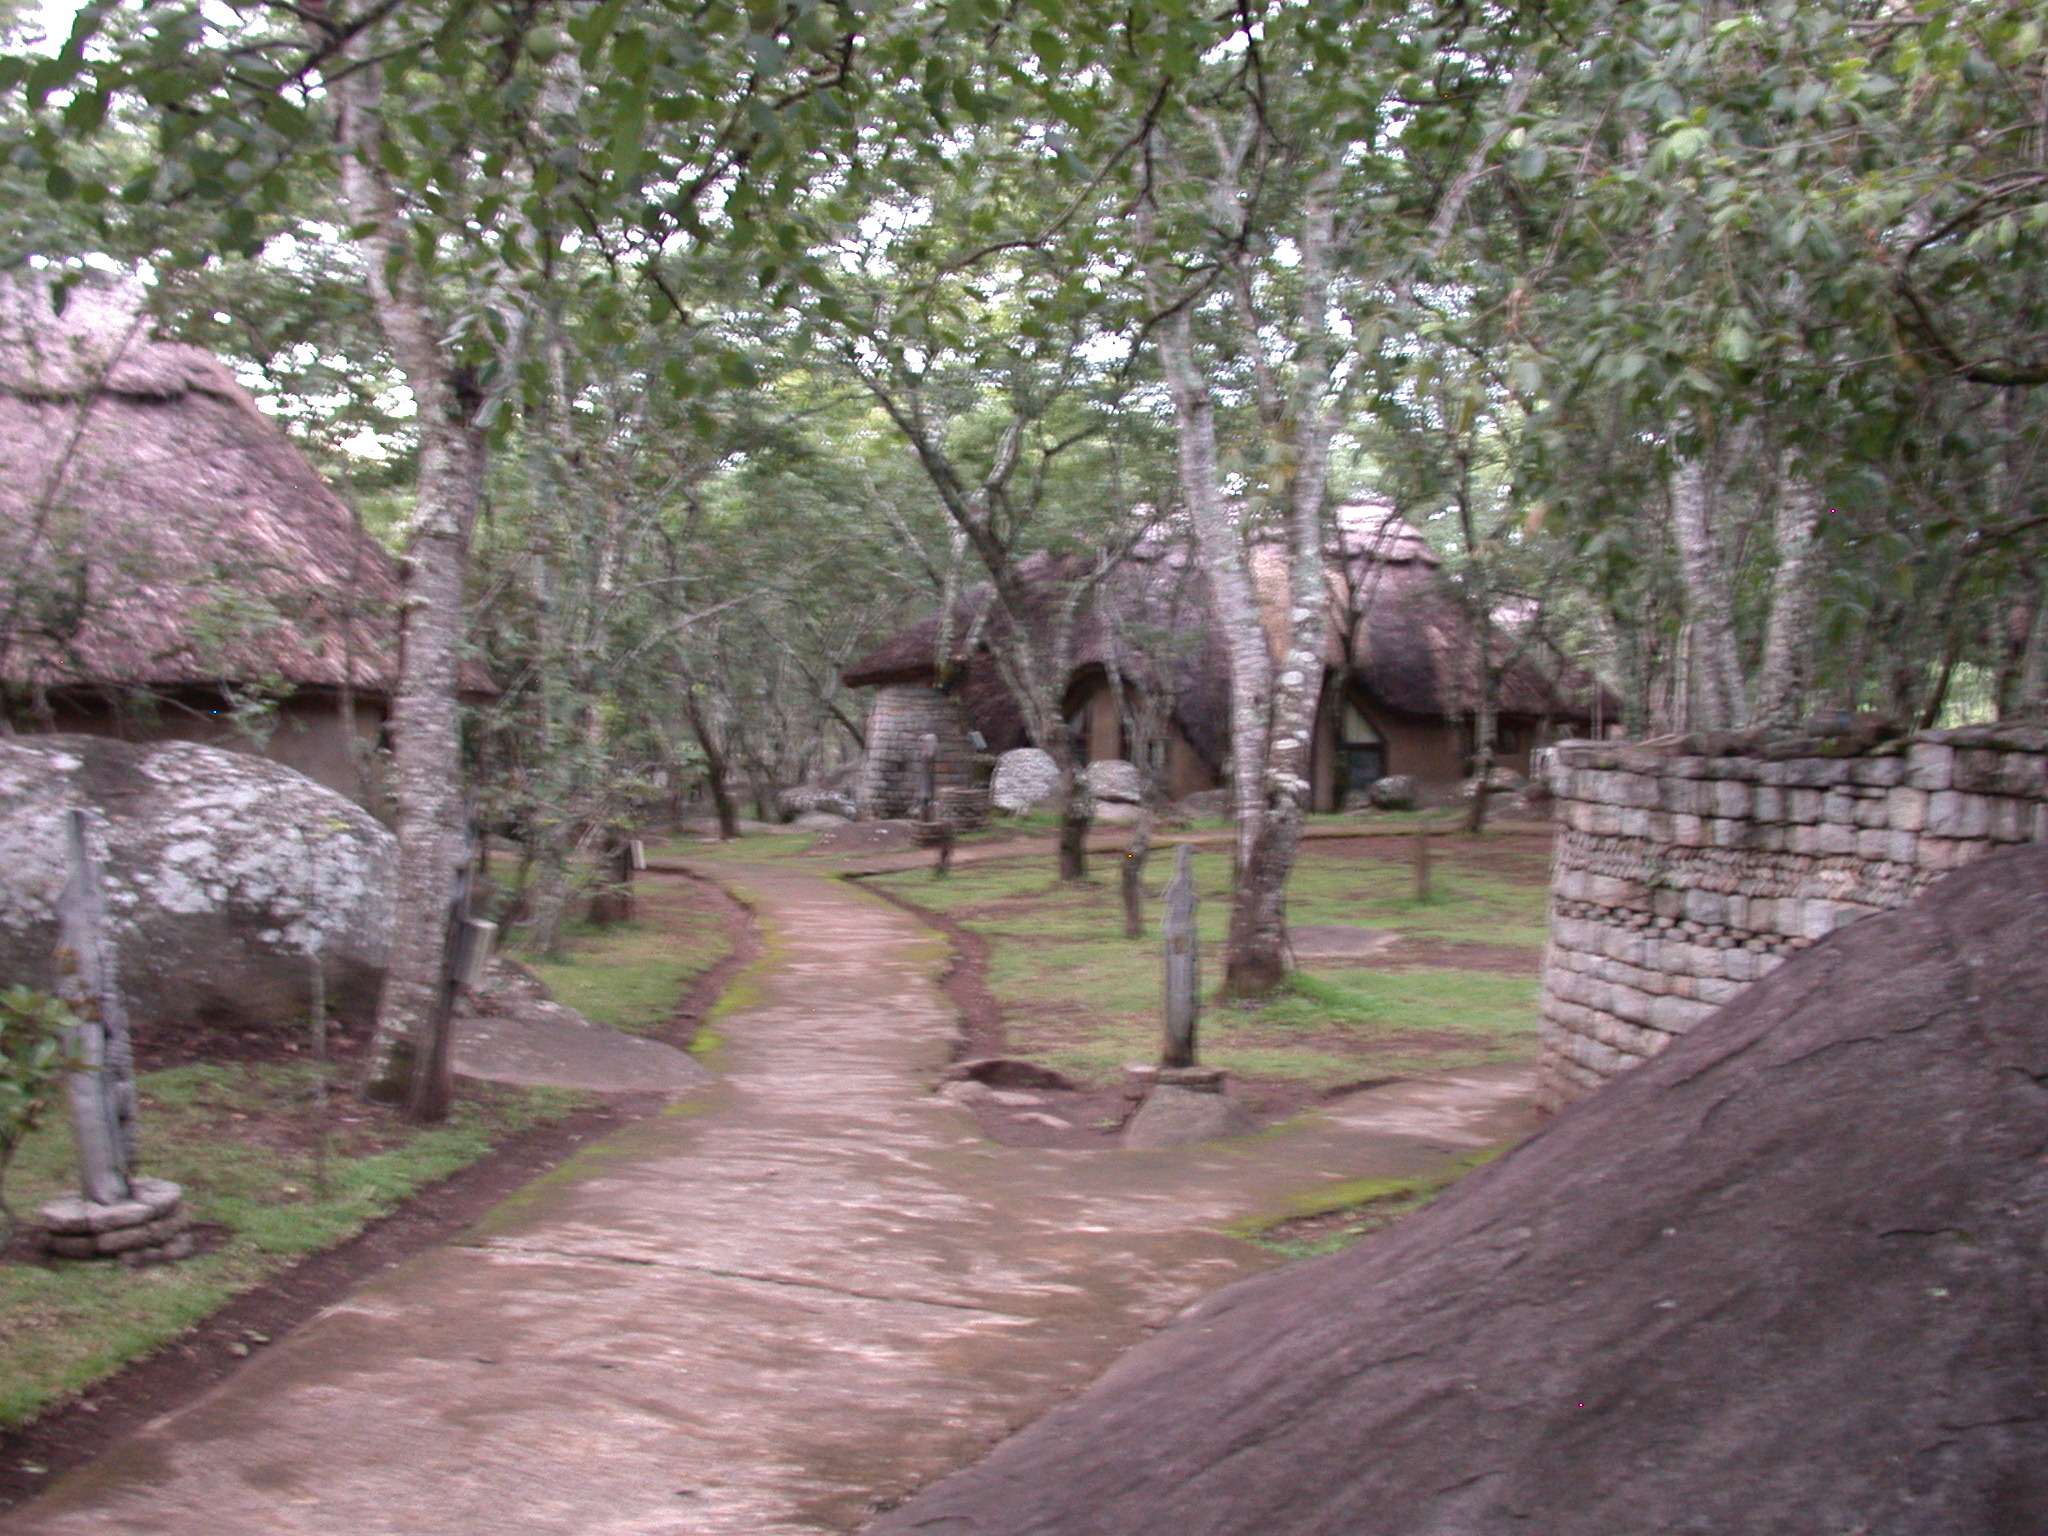 Grounds of the Ancient City Lodge, Great Zimbabwe, Outside Masvingo, Zimbabwe